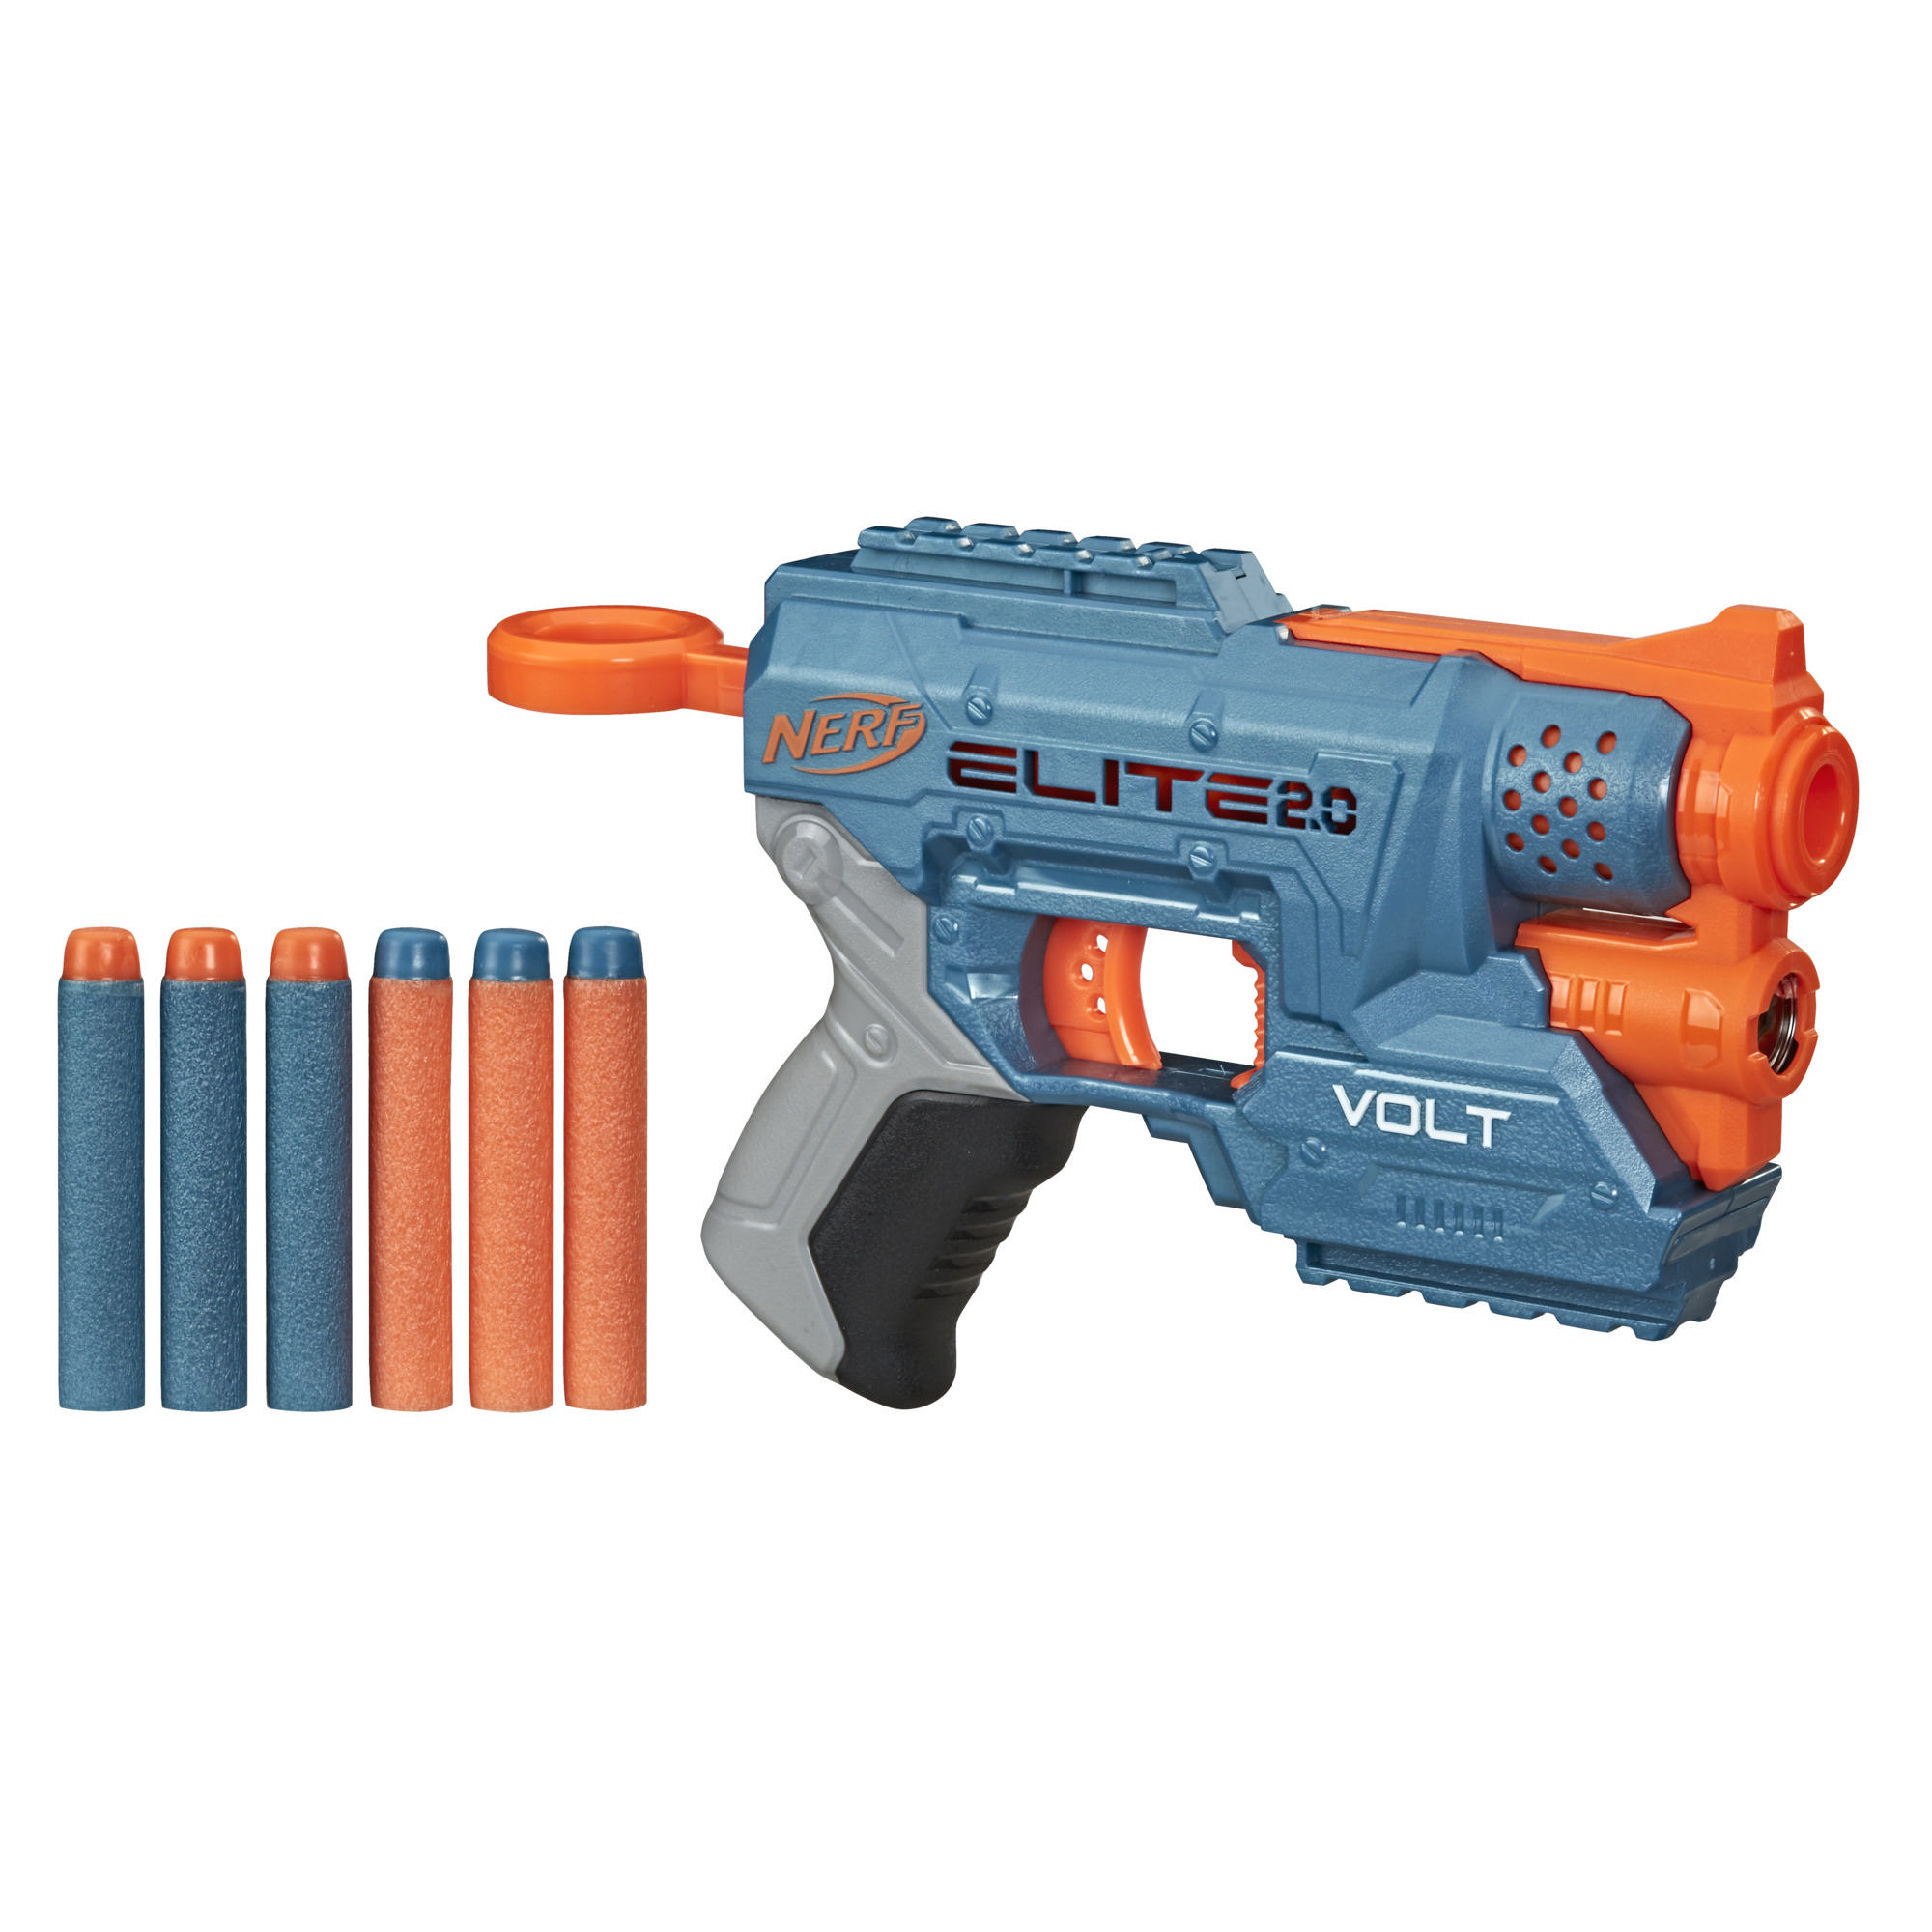 Nerf Elite 2.0 Volt SD-1 Blaster -- 6 Official Nerf Darts, Light Beam Targeting, 2-Dart Storage, 2 Tactical Rails